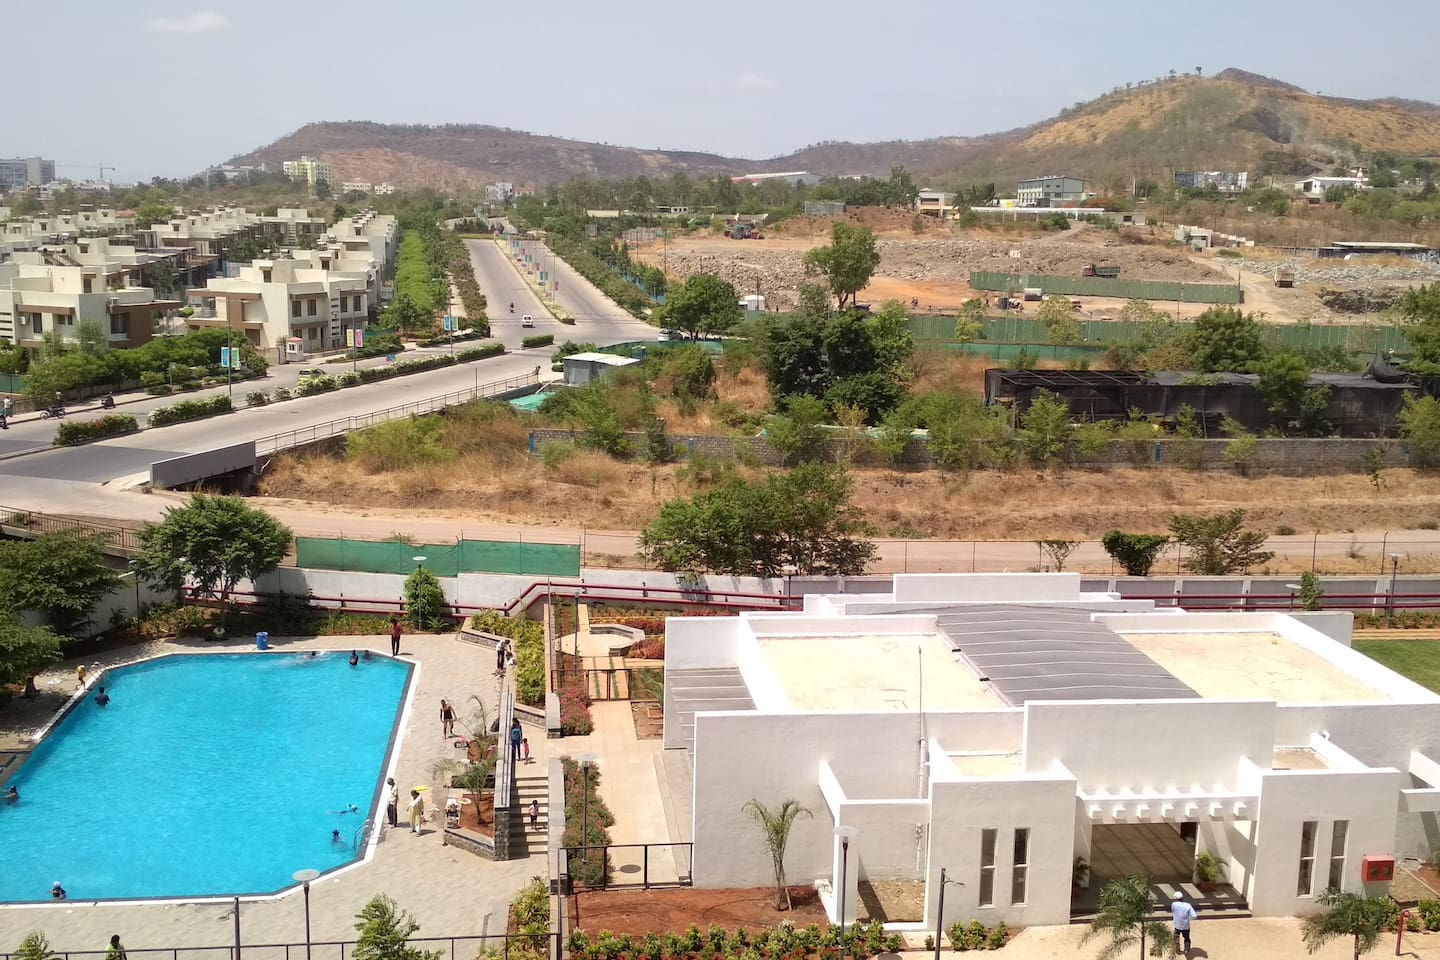 Swimming pool, Amenities and Scenery view from Balcony